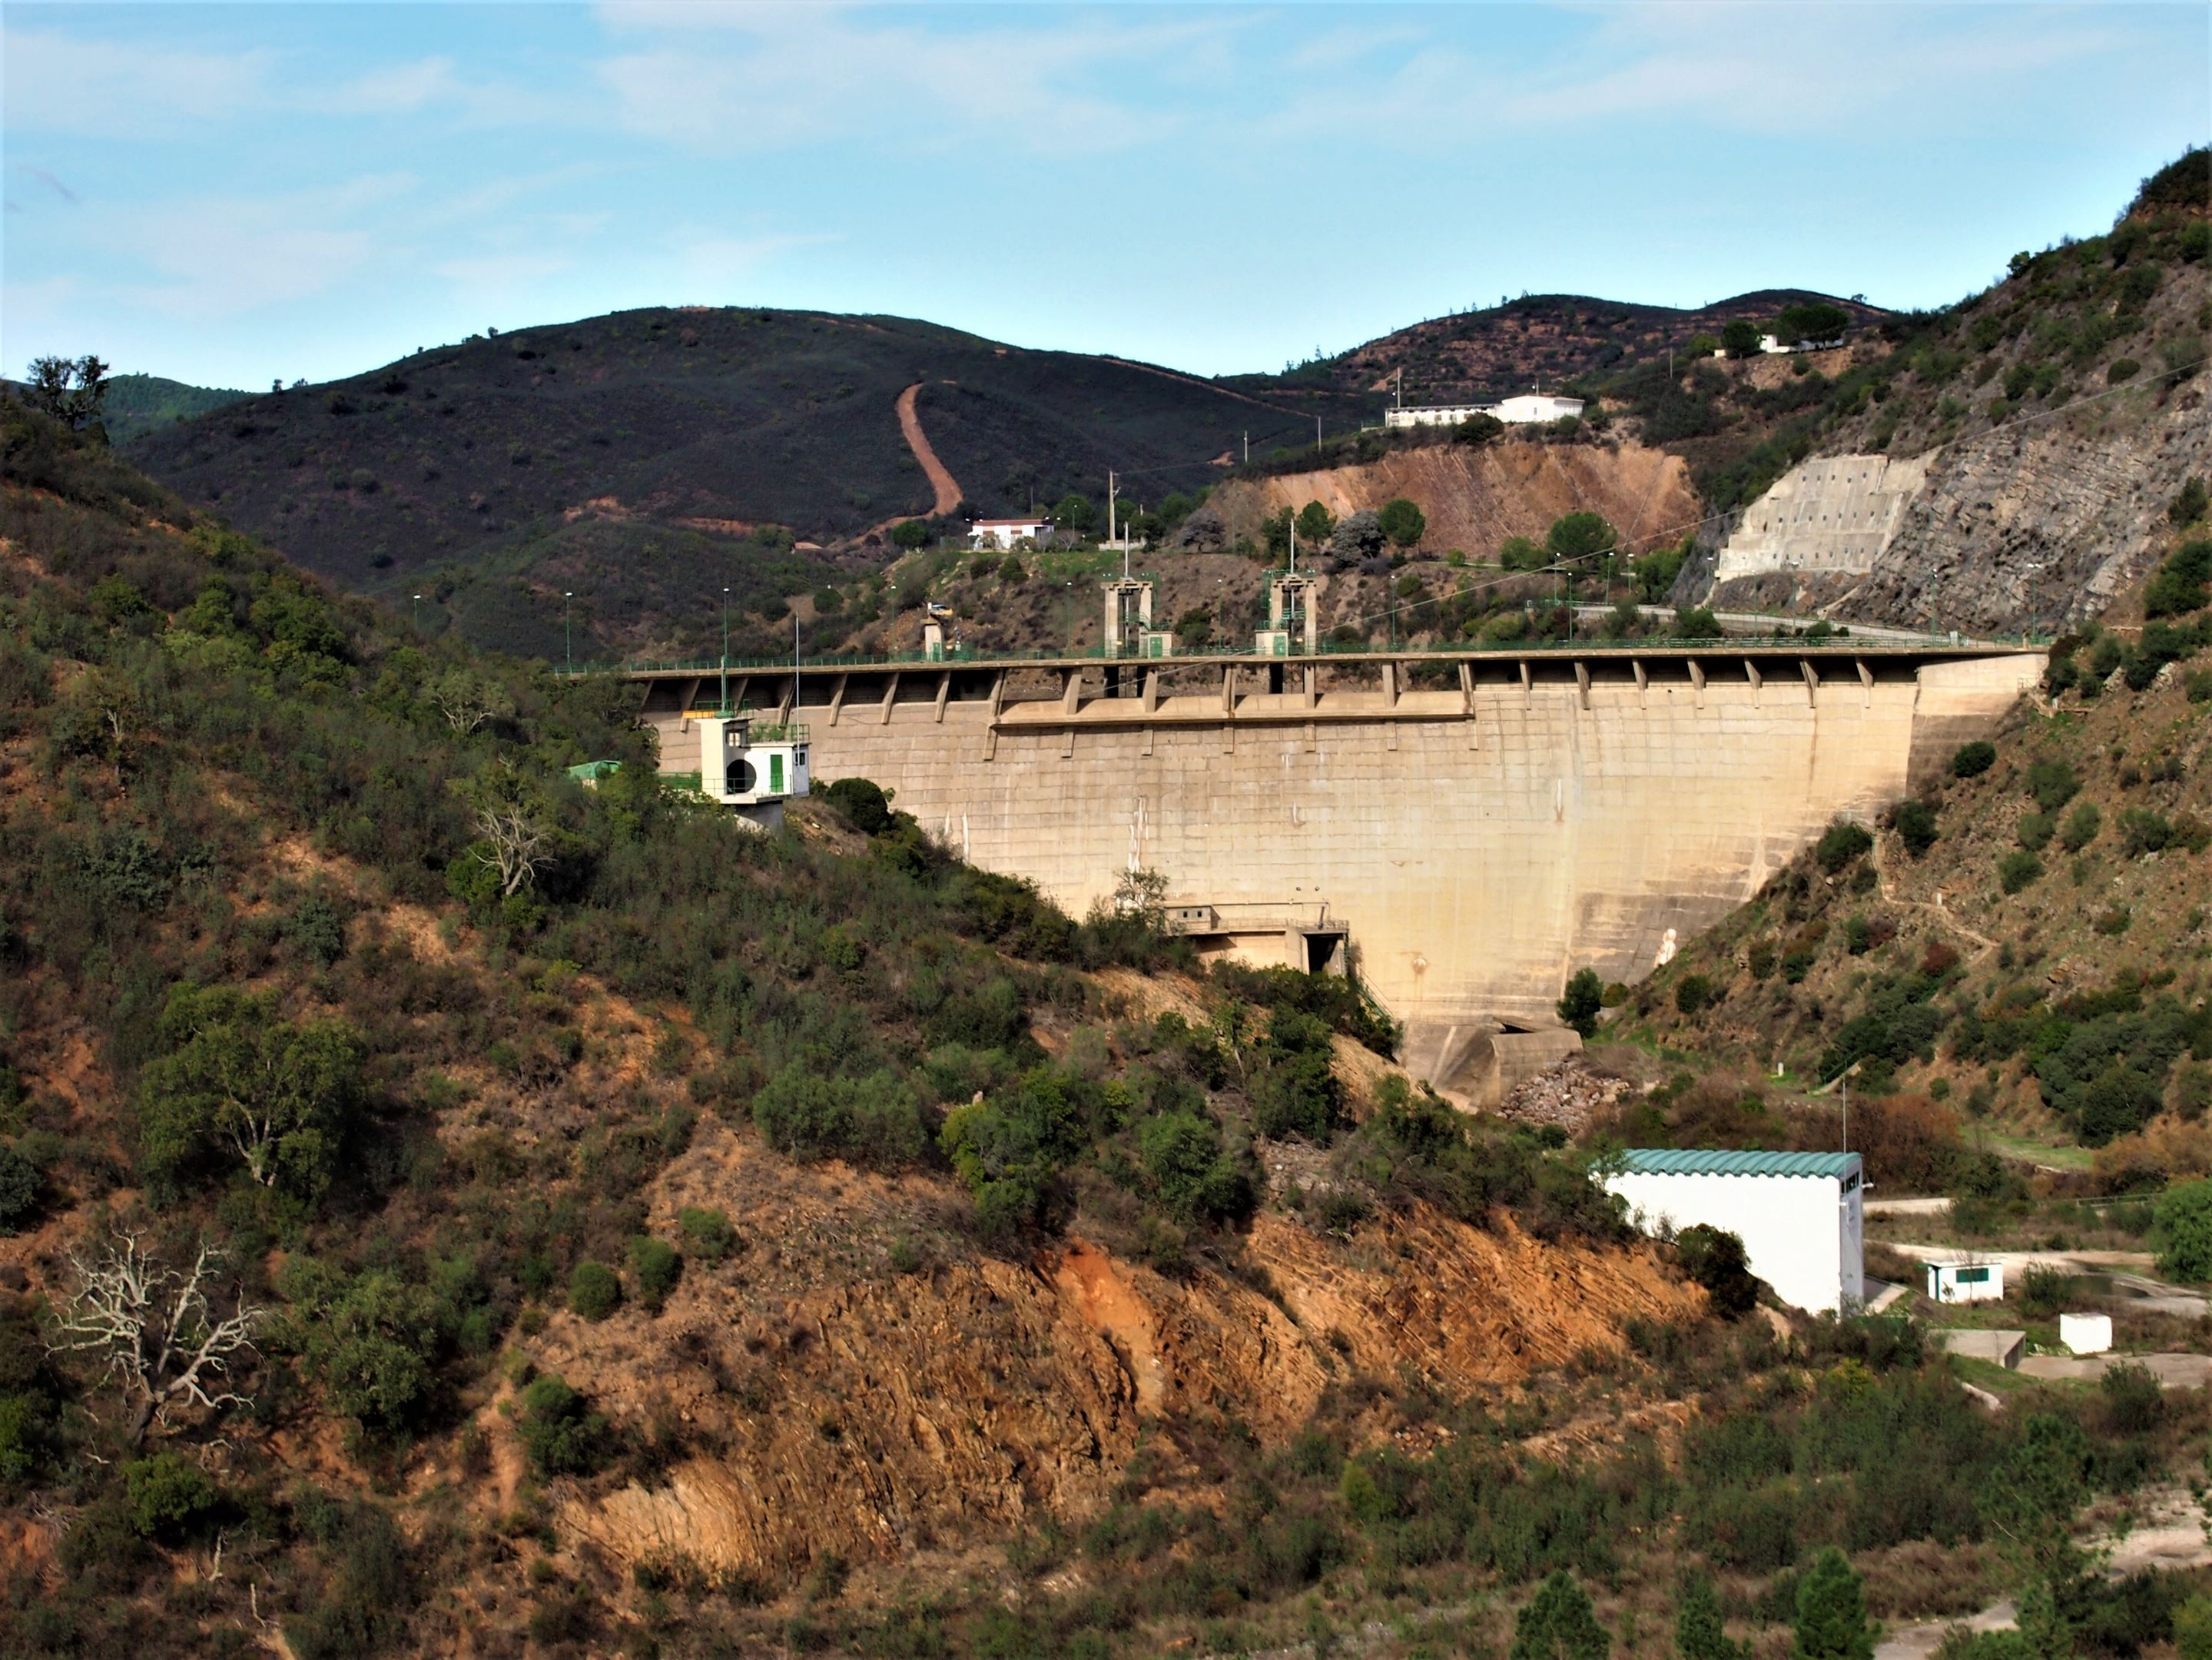 The dam wall. The Barragem do Funcho (or Funcho Dam), near São Bartolomeu de Messines, Algarve.